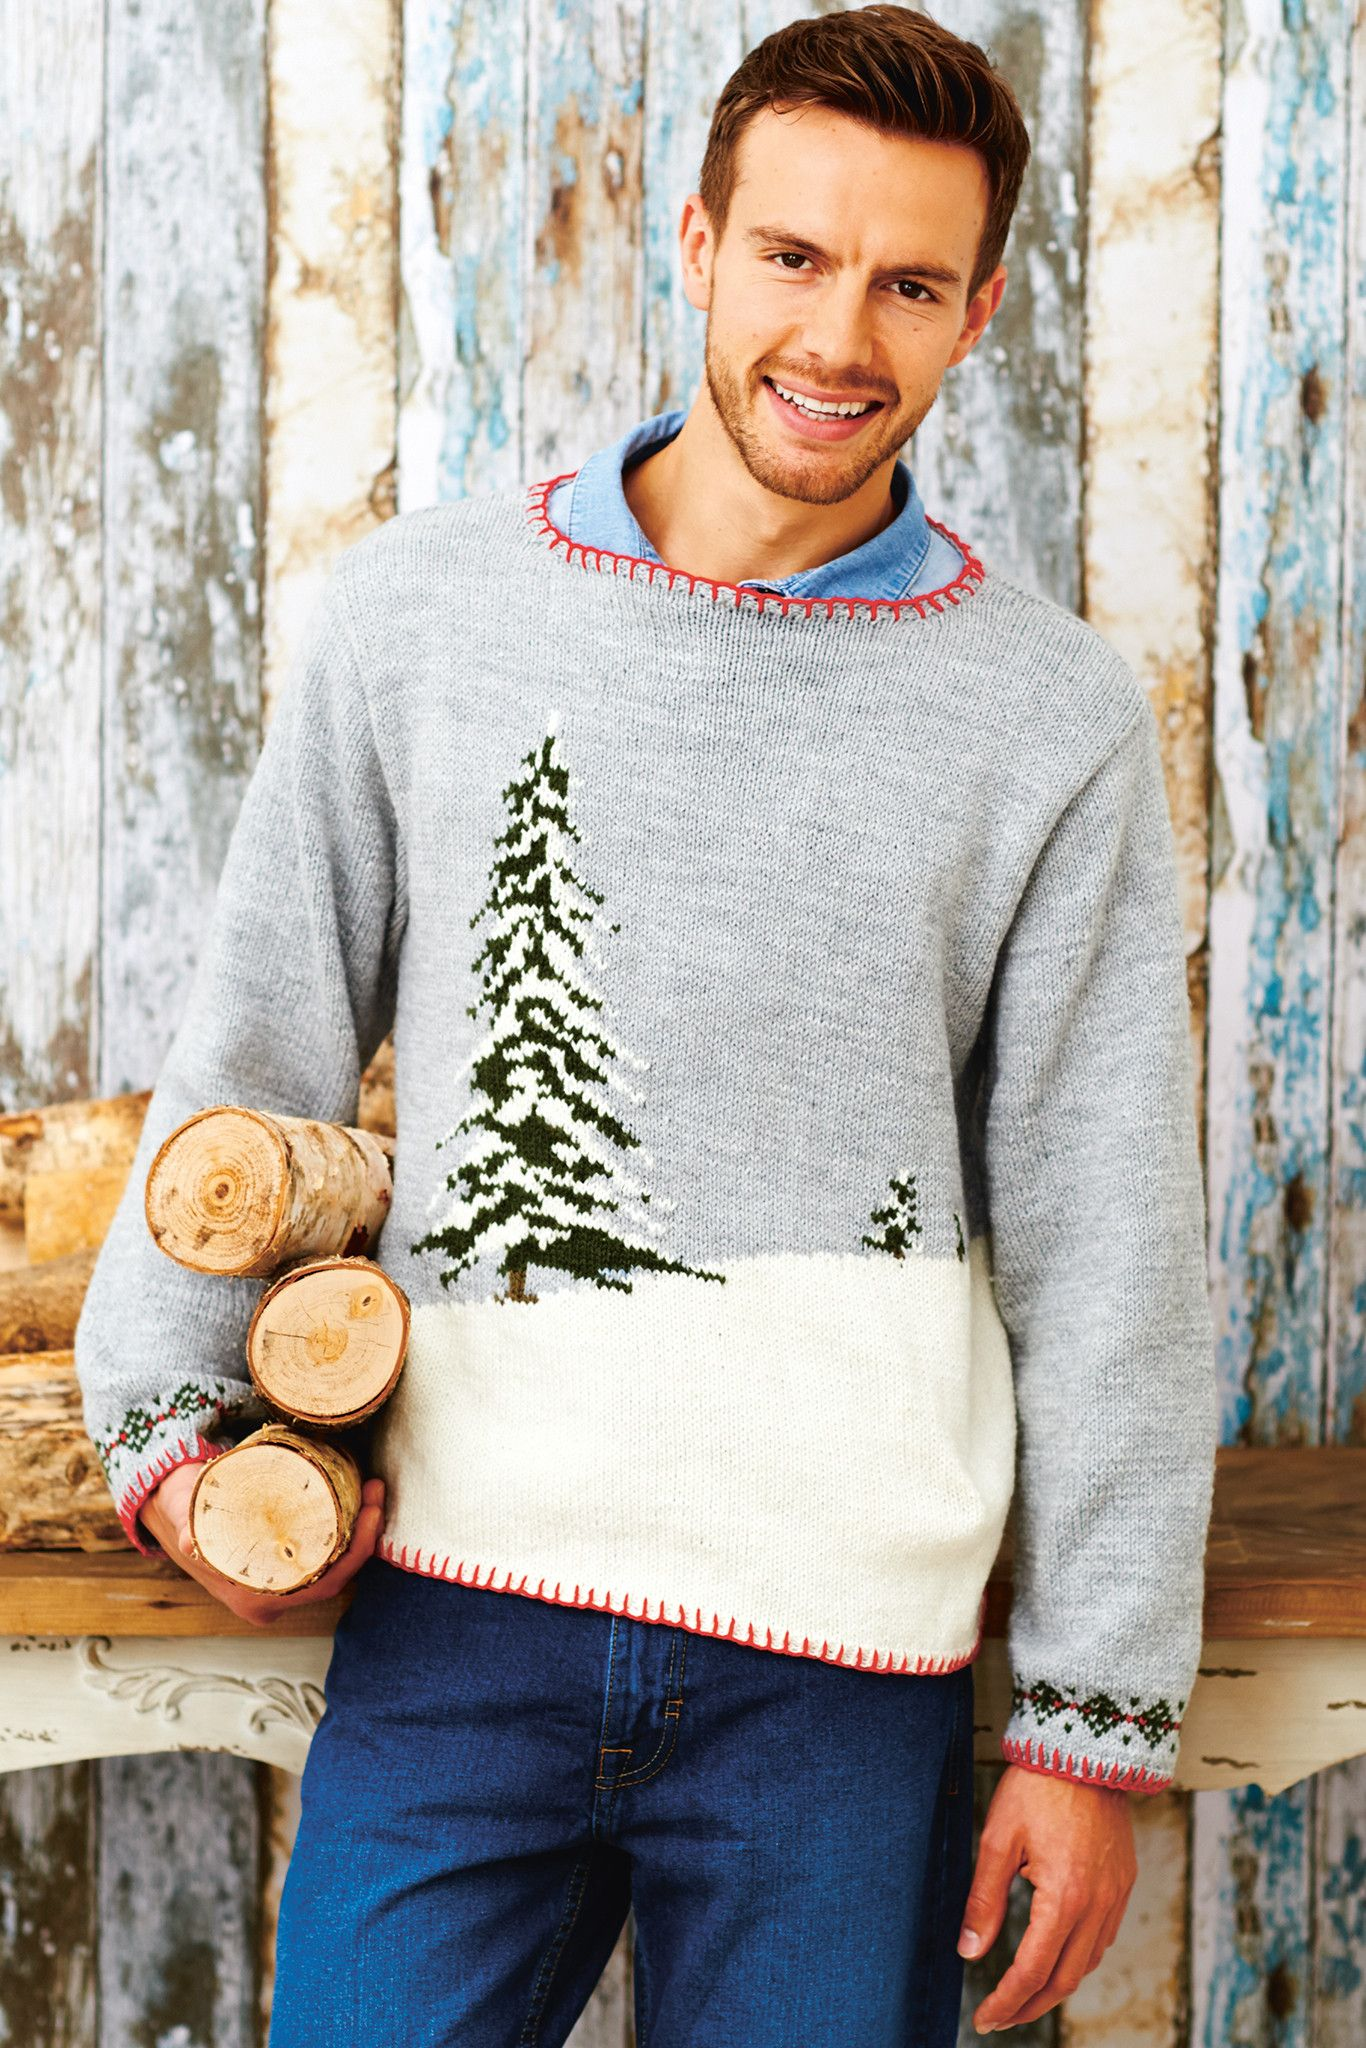 c024624f878a60 Grey knitted Christmas sweater for a man with design of a pine tree in snow